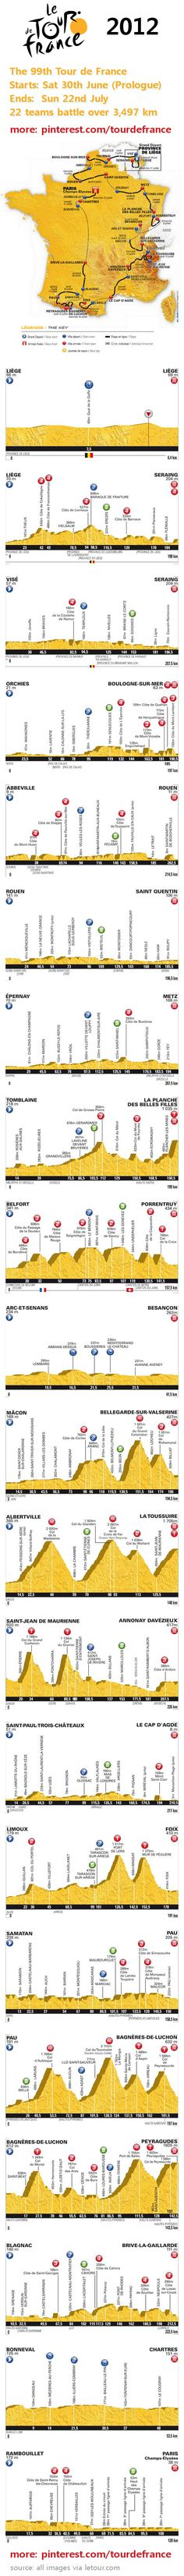 #infographic Map & All Stage Profiles. #tdf #sbstdf Tour de France 2012